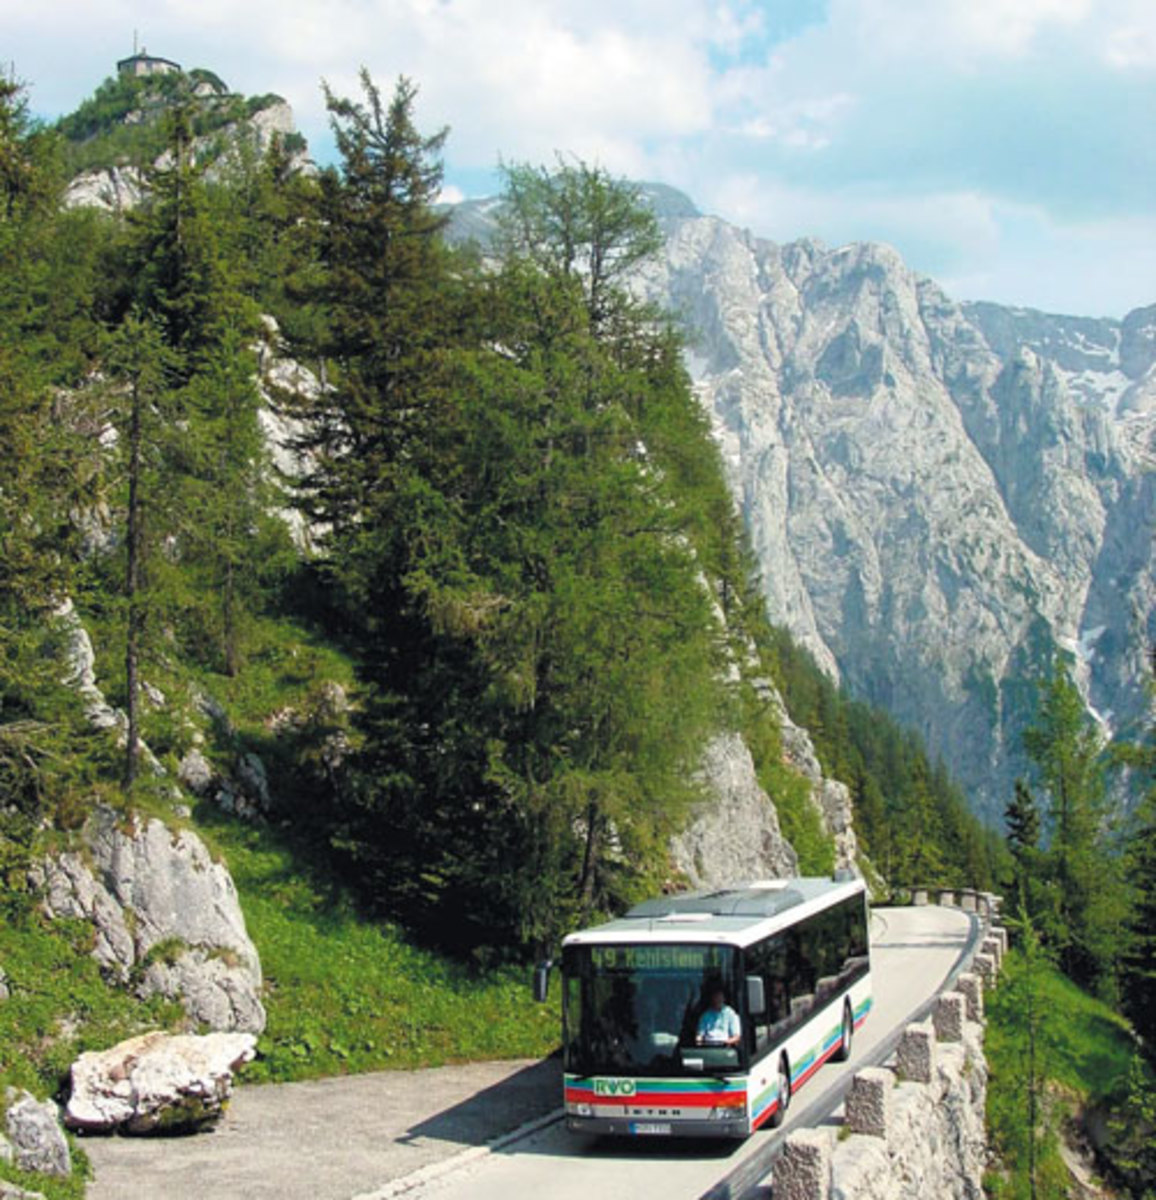 Kehlsteinstrasse where the bus takes tourists up to Eagle's Nest.